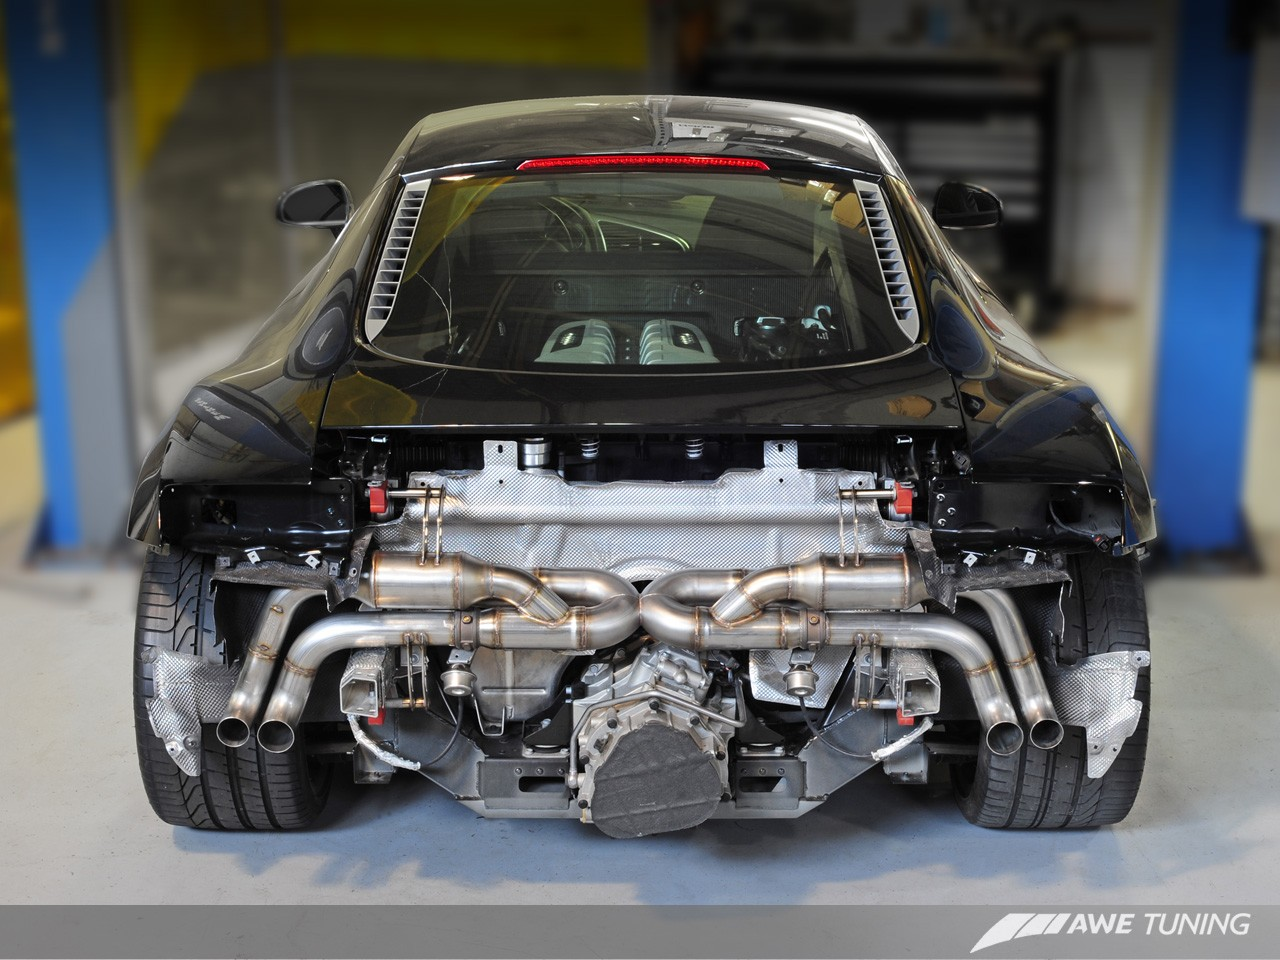 Awe Switchpath Exhaust System For Audi R8 52l Awe Tuning